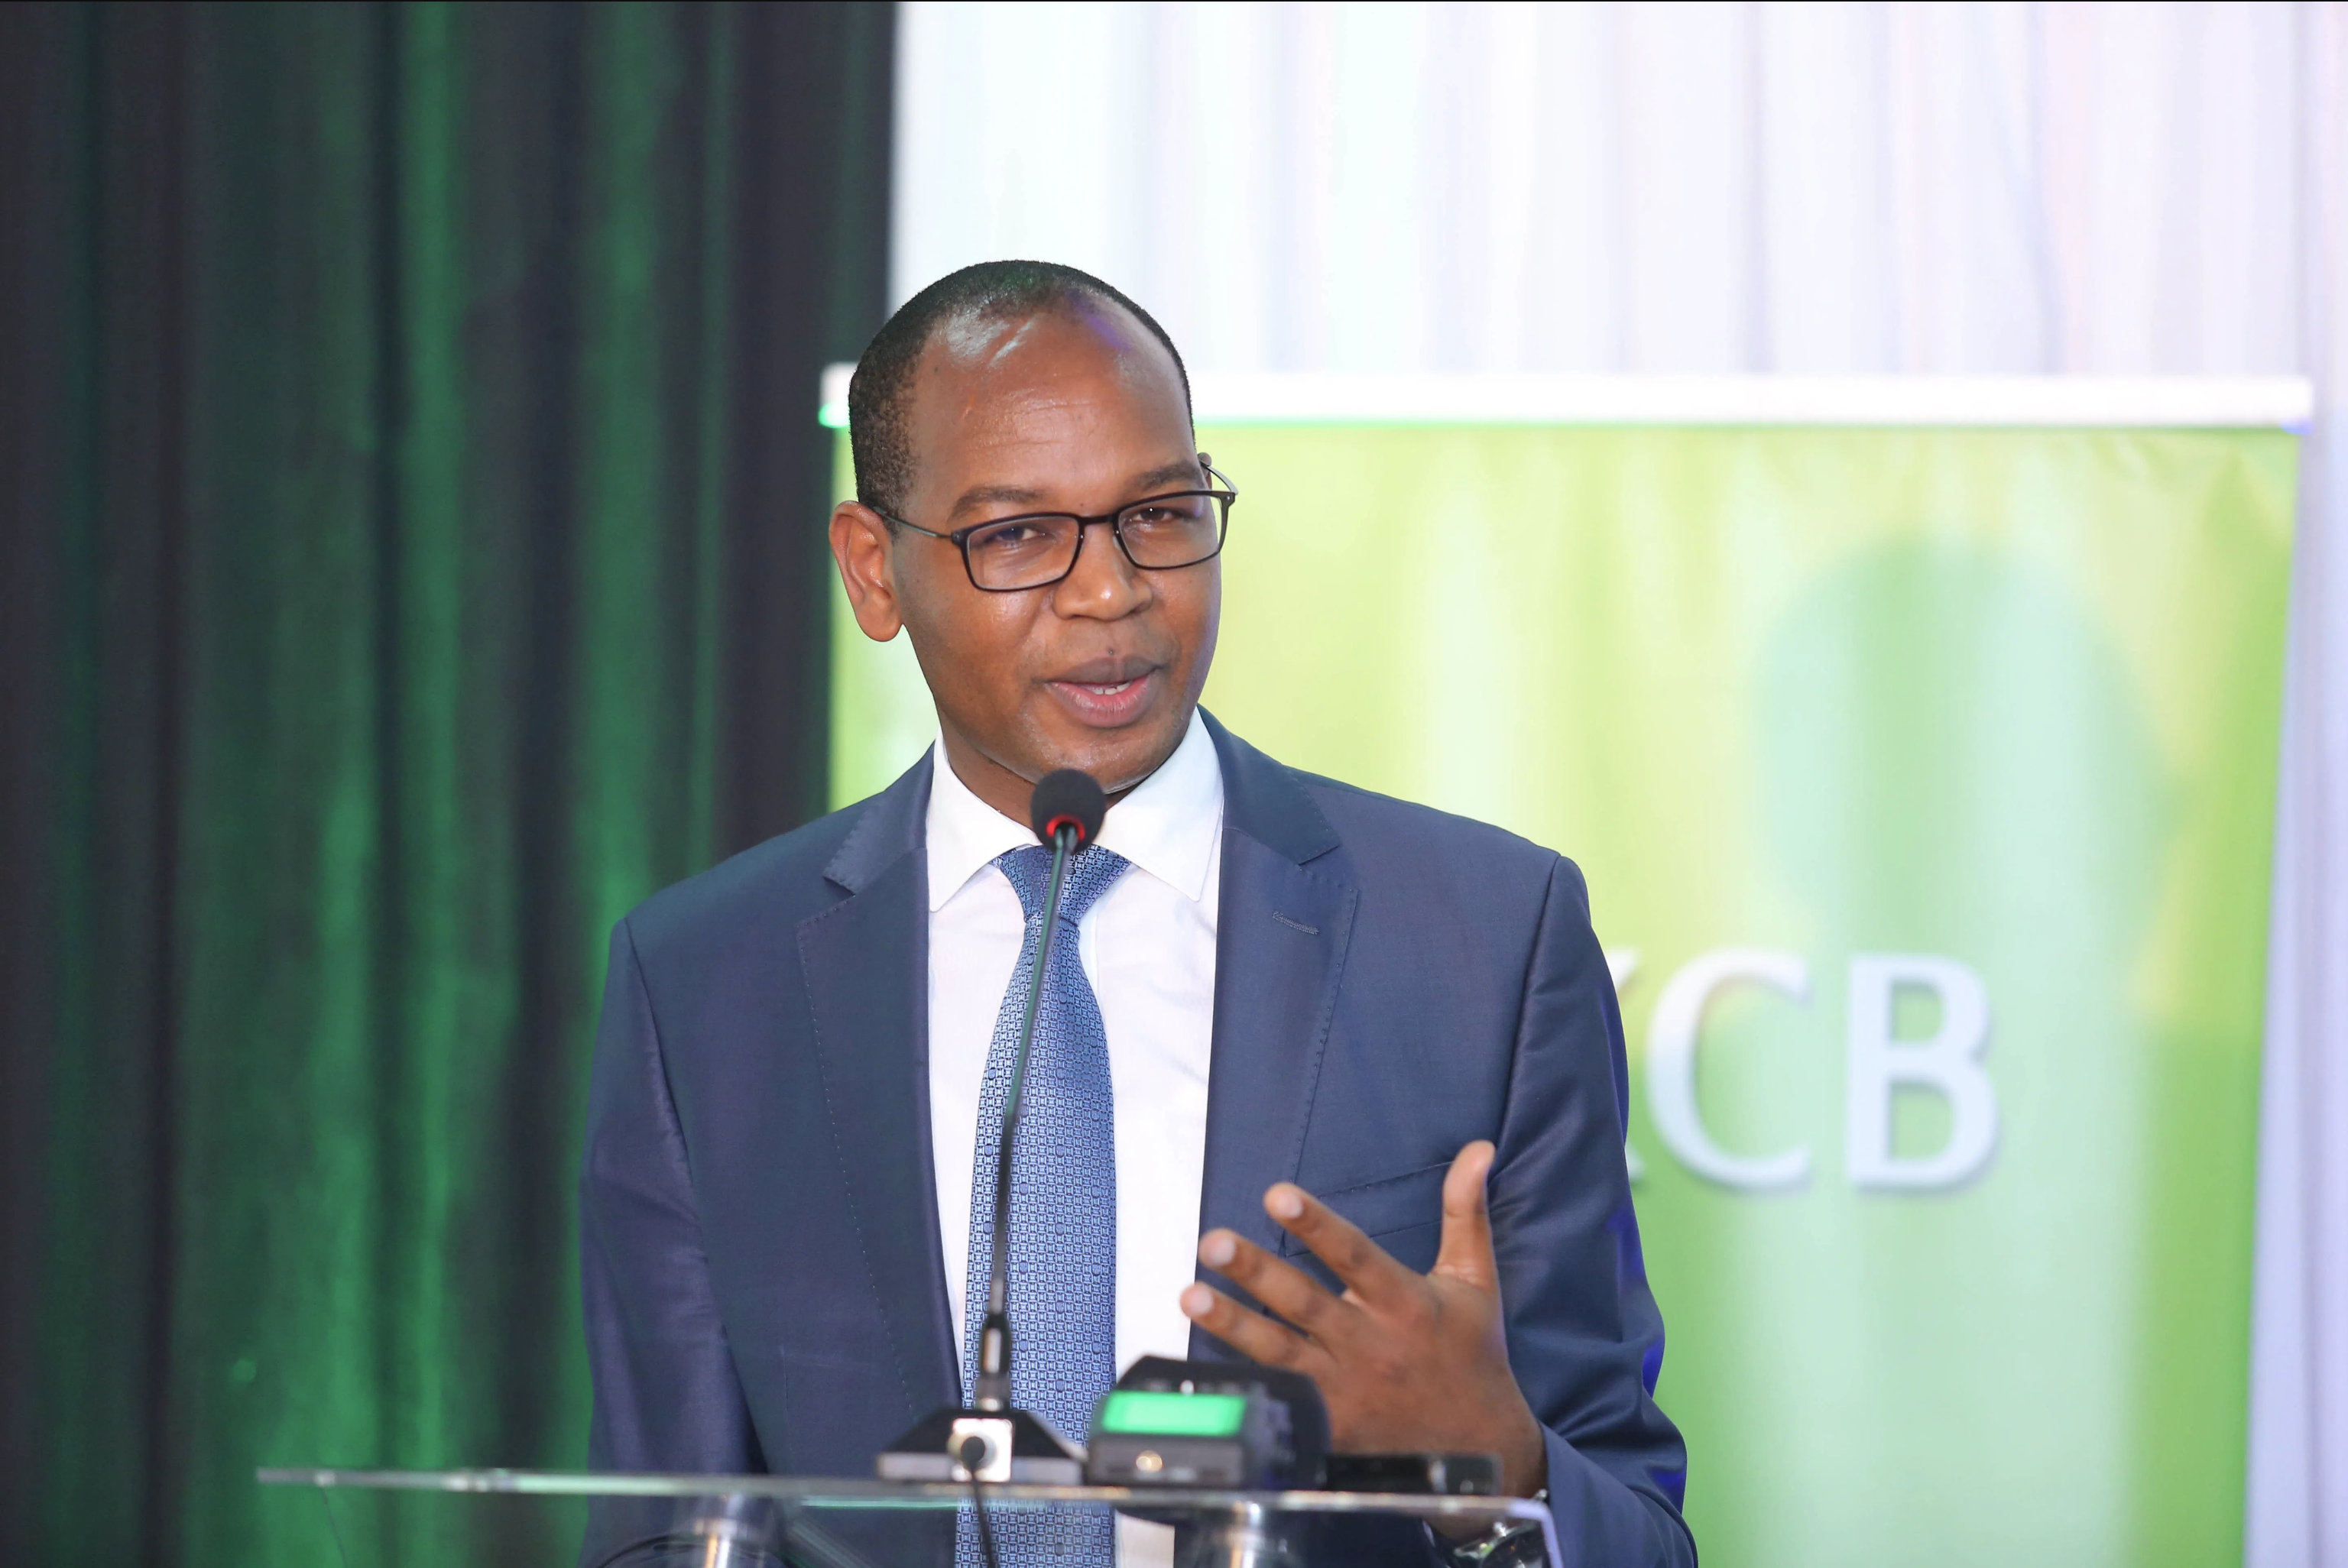 KCB posts a 5% first half growth in after tax profits: What ticks for the bank?